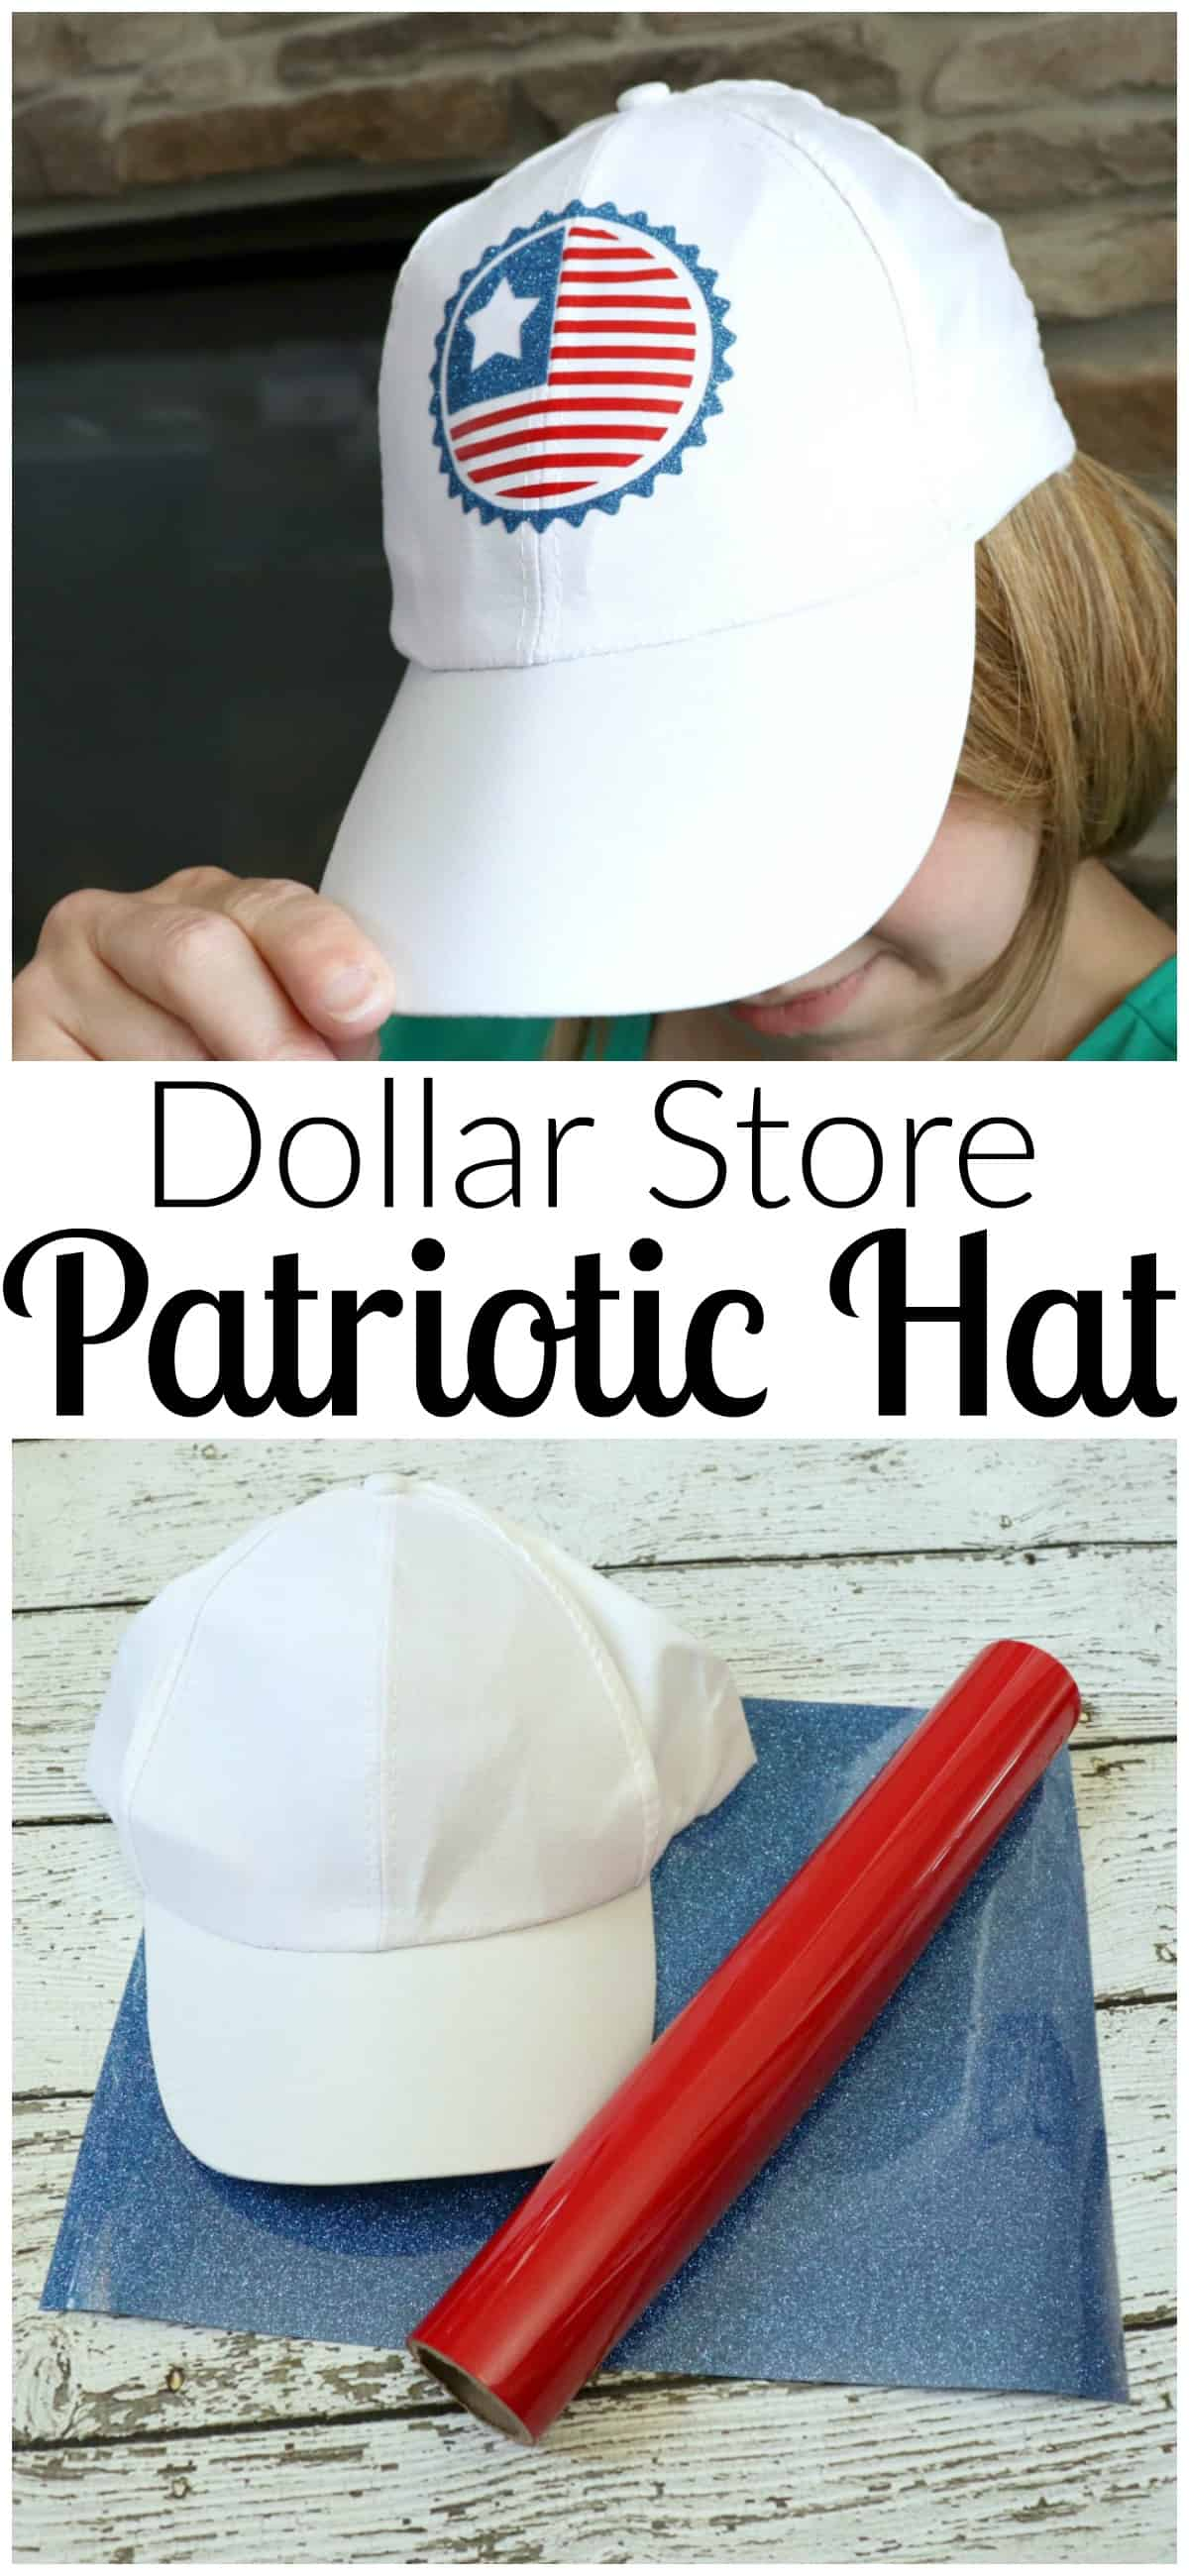 Make a patriotic hat with vinyl scraps and a dollar store hat